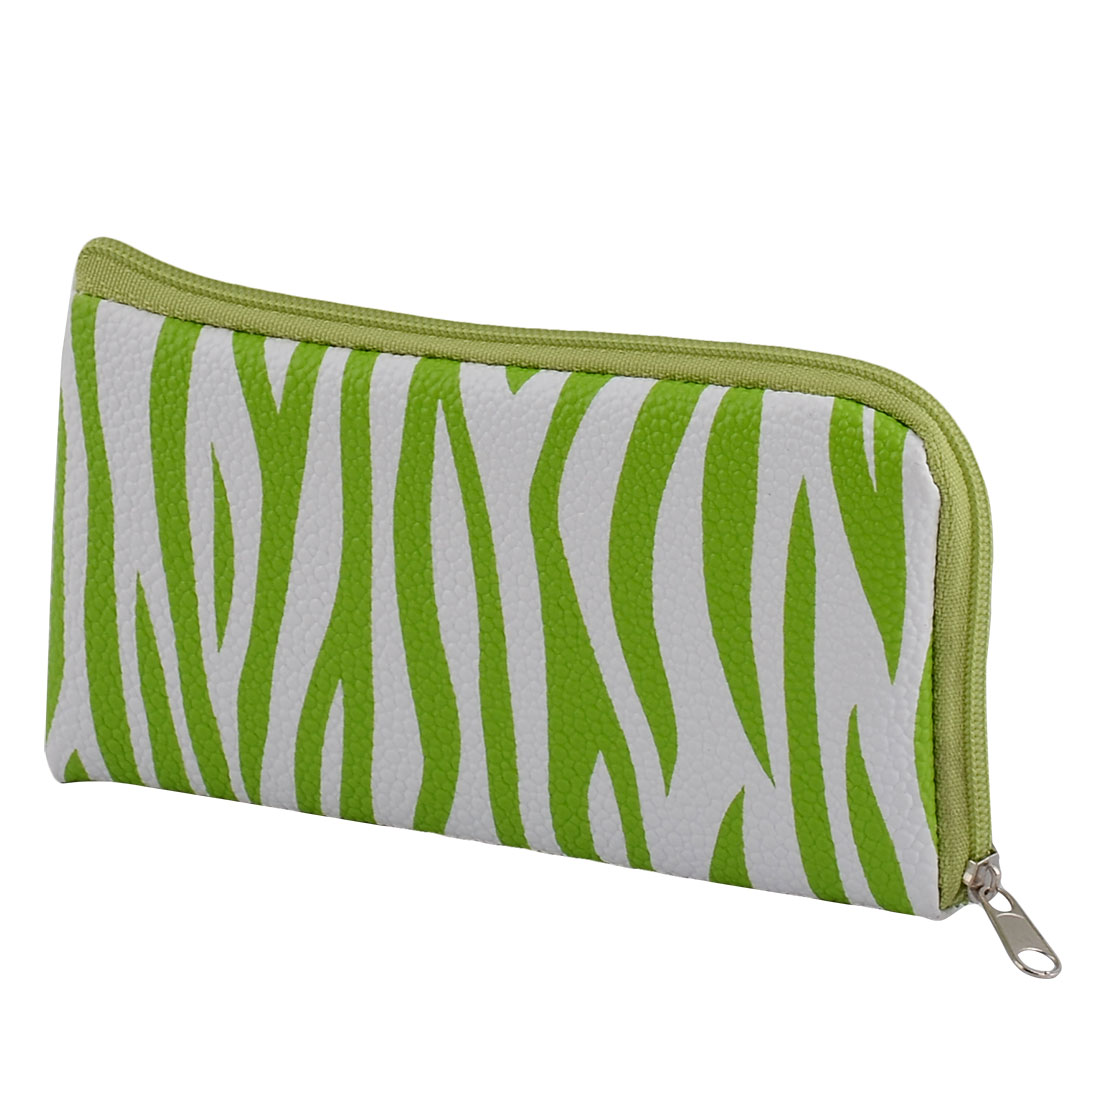 Green White Zebra Stripe Purse w Hand Strap for Smartphone